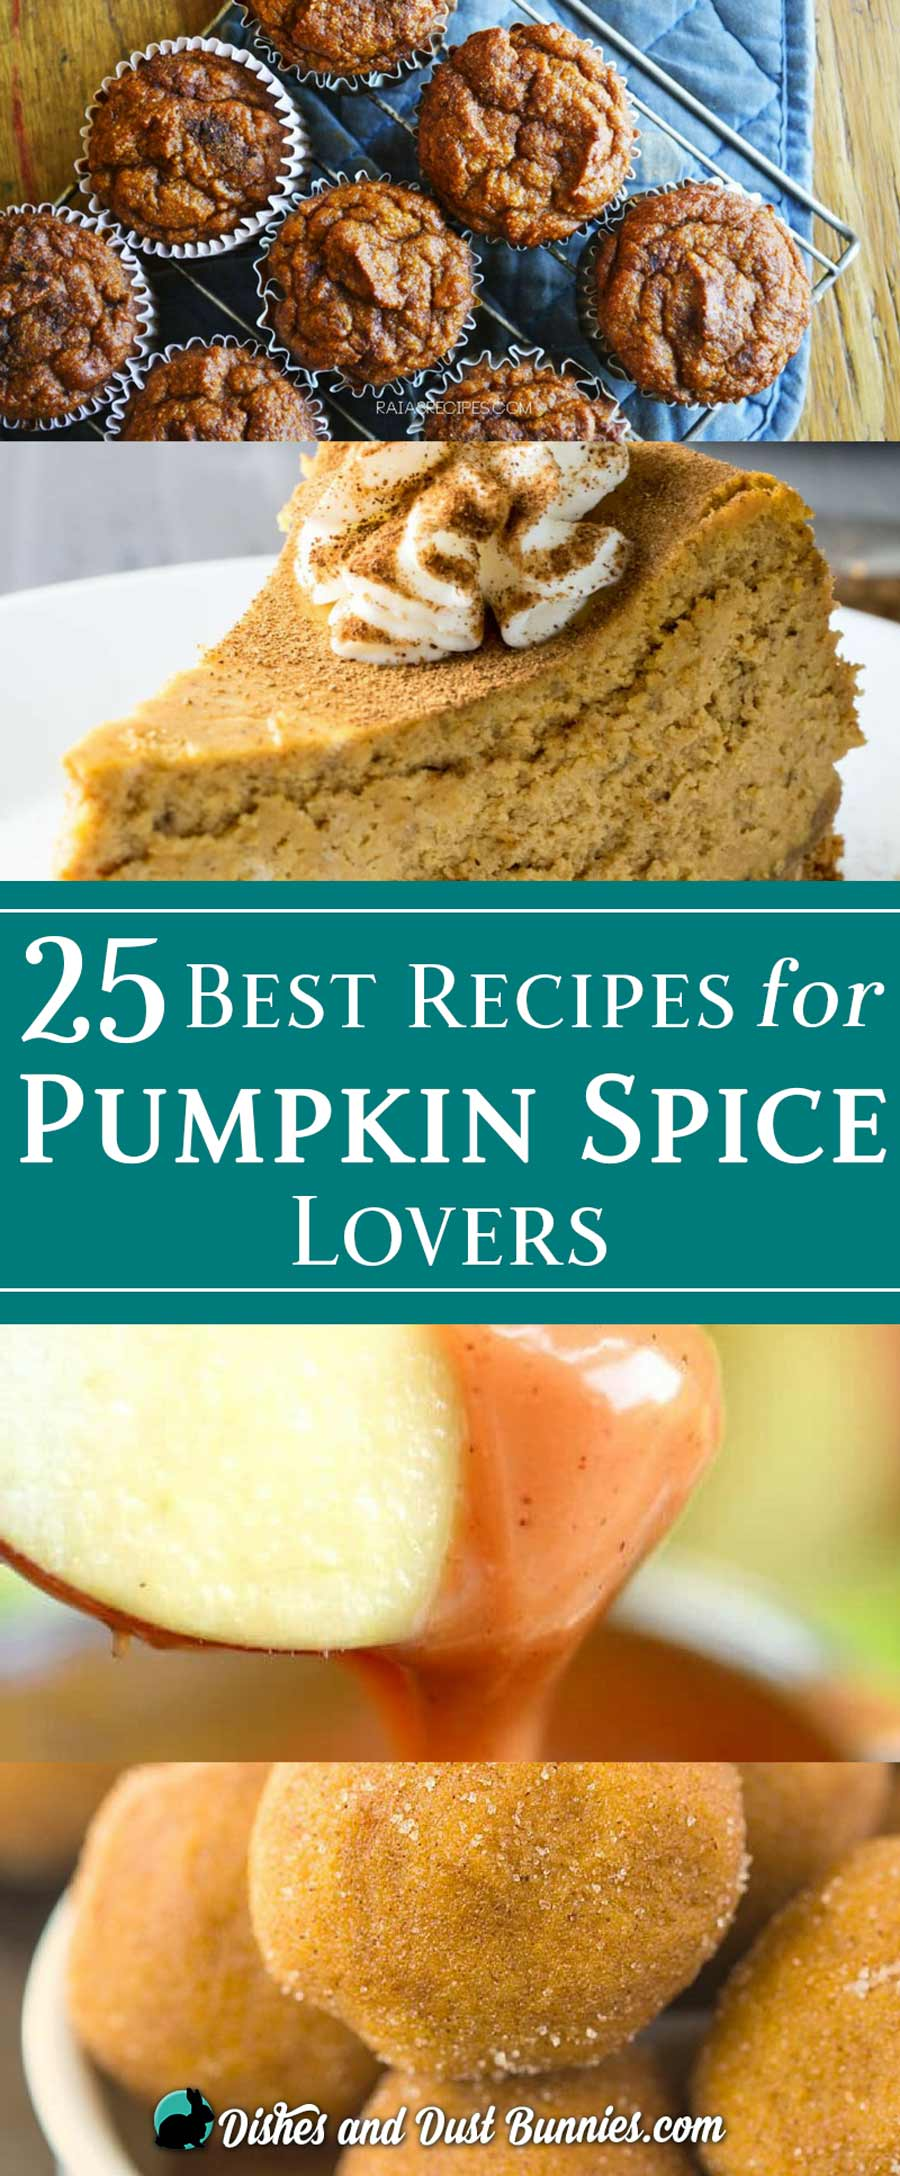 25 Best Recipes for Pumpkin Spice Lovers - dishesanddustbunnies.com